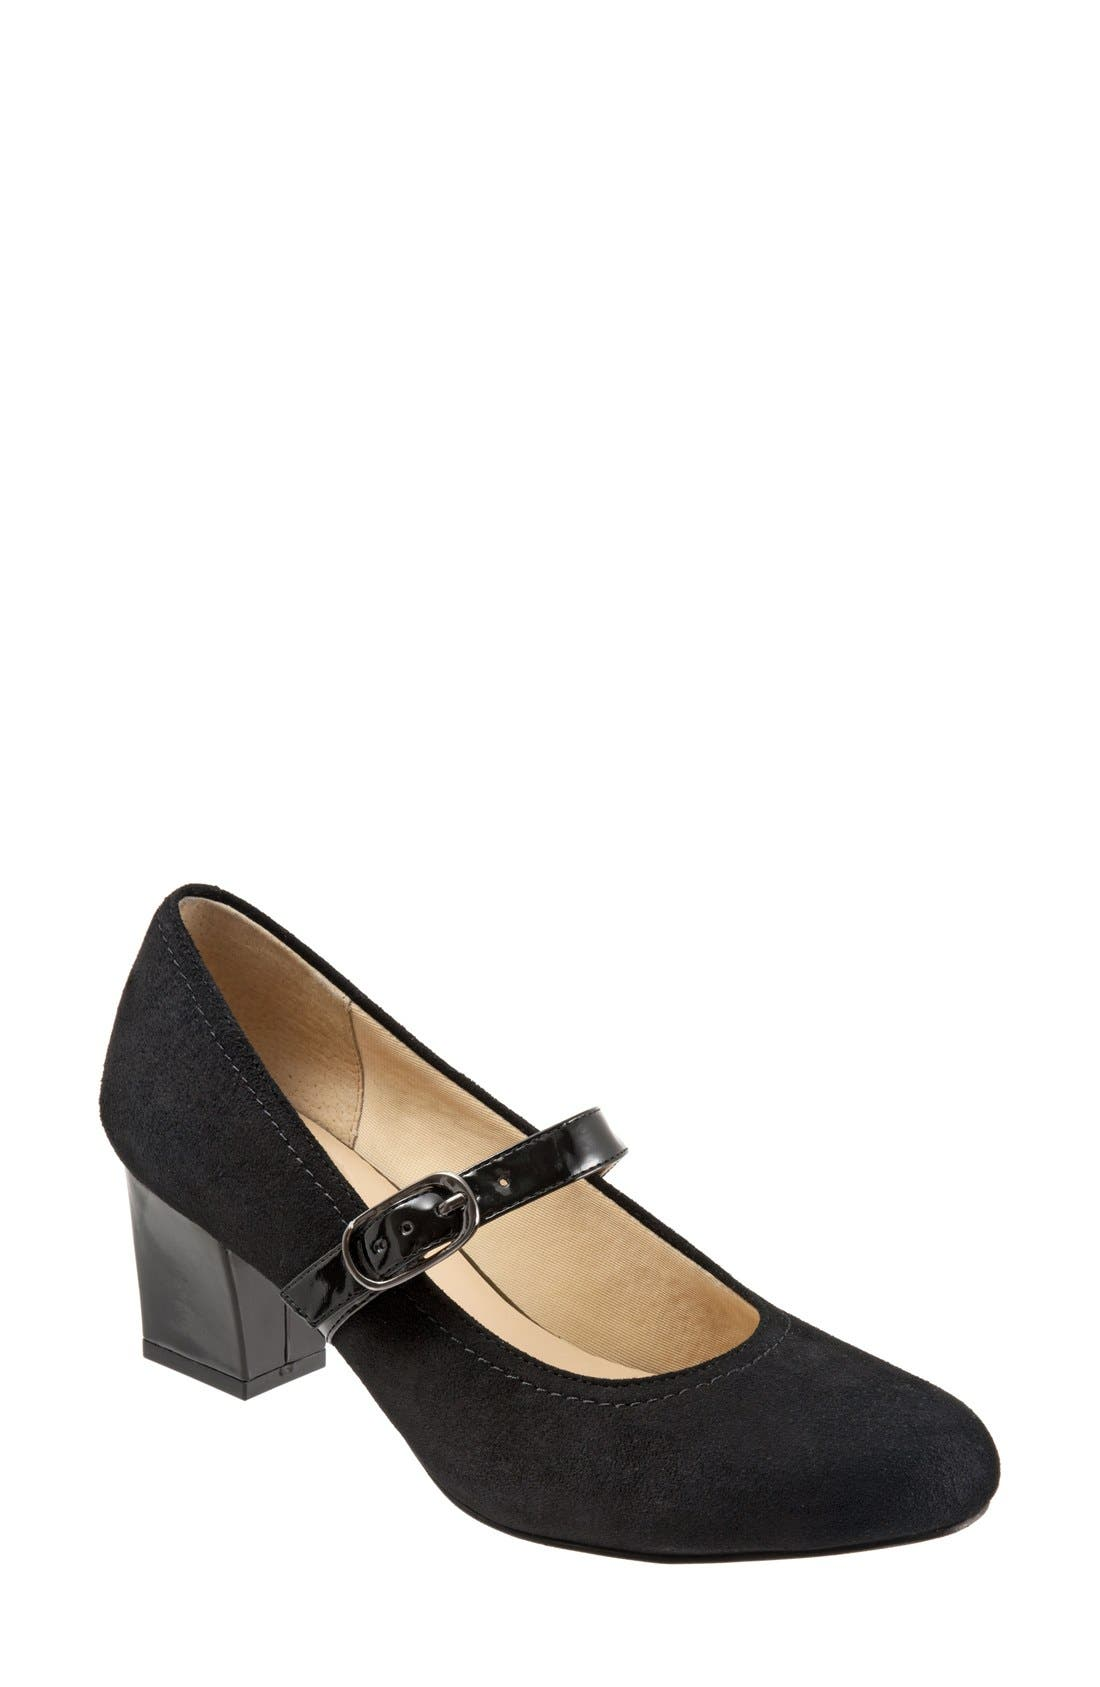 TROTTERS, 'Candice' Mary Jane Pump, Main thumbnail 1, color, BLACK SUEDE